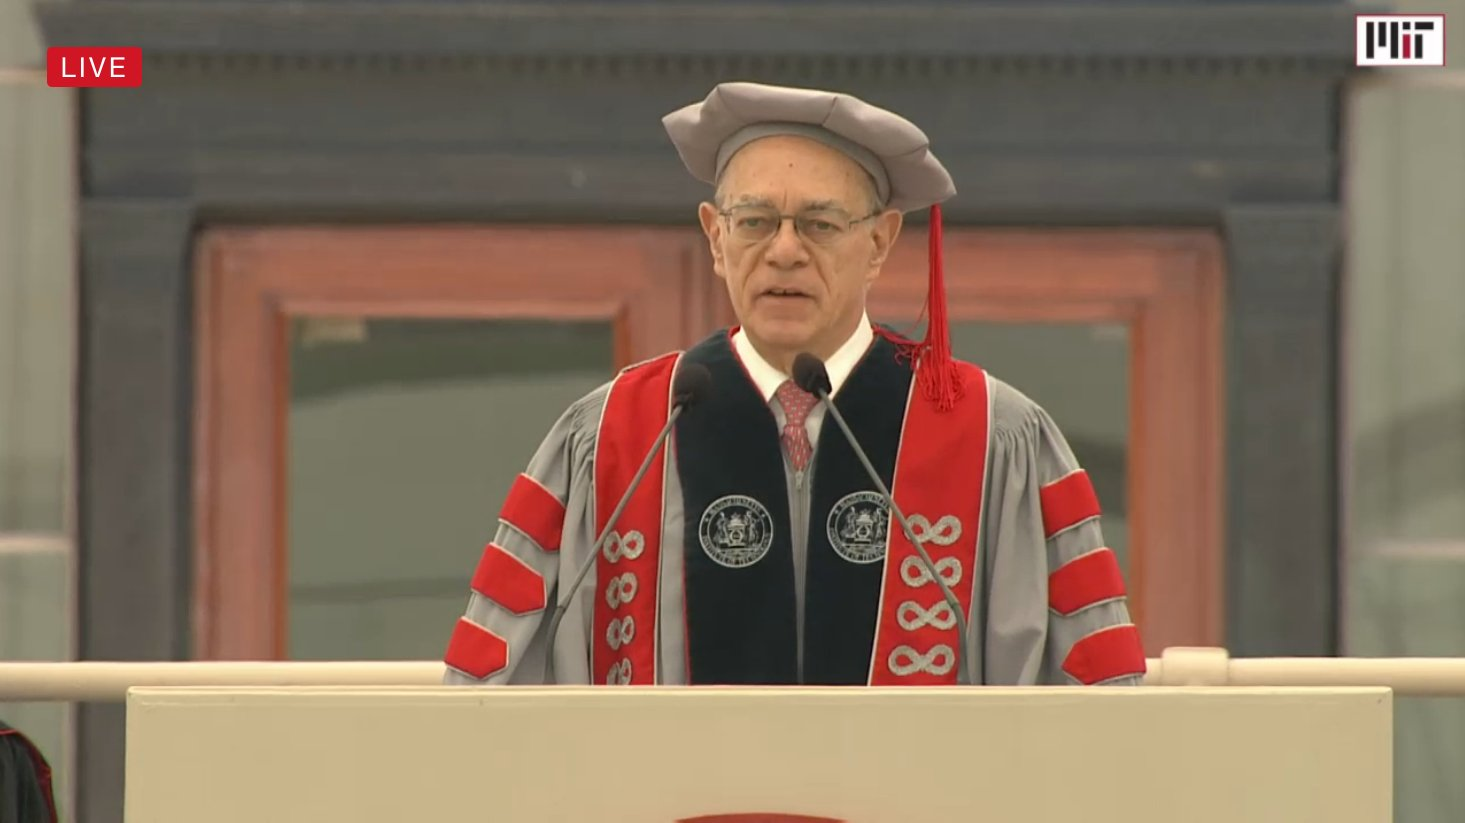 """We are driven and motivated to work on deep problems."" – Rafael Reif #MIT2017 @mitcommencement #mitbetterworld https://t.co/RThLtk4ydt"